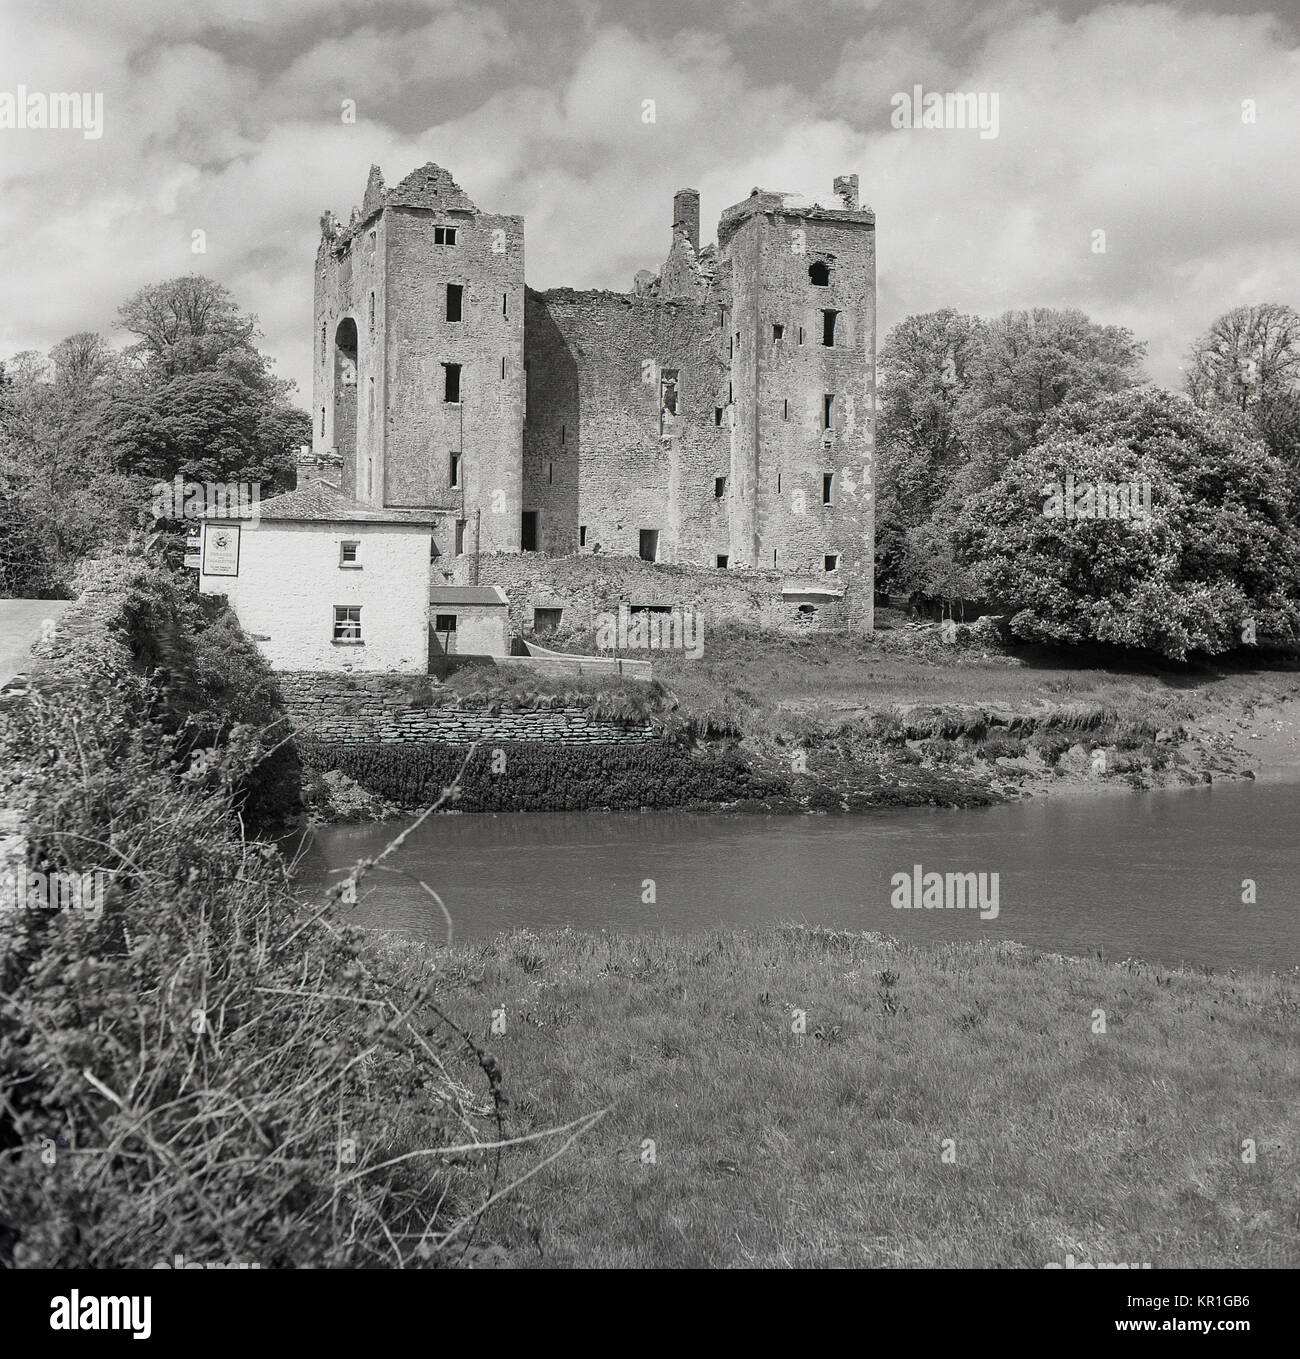 1950s, exterior view of the medieval tower house, Bunratty Castle, Co Clare, Ireland, showing the ancient building - Stock Image